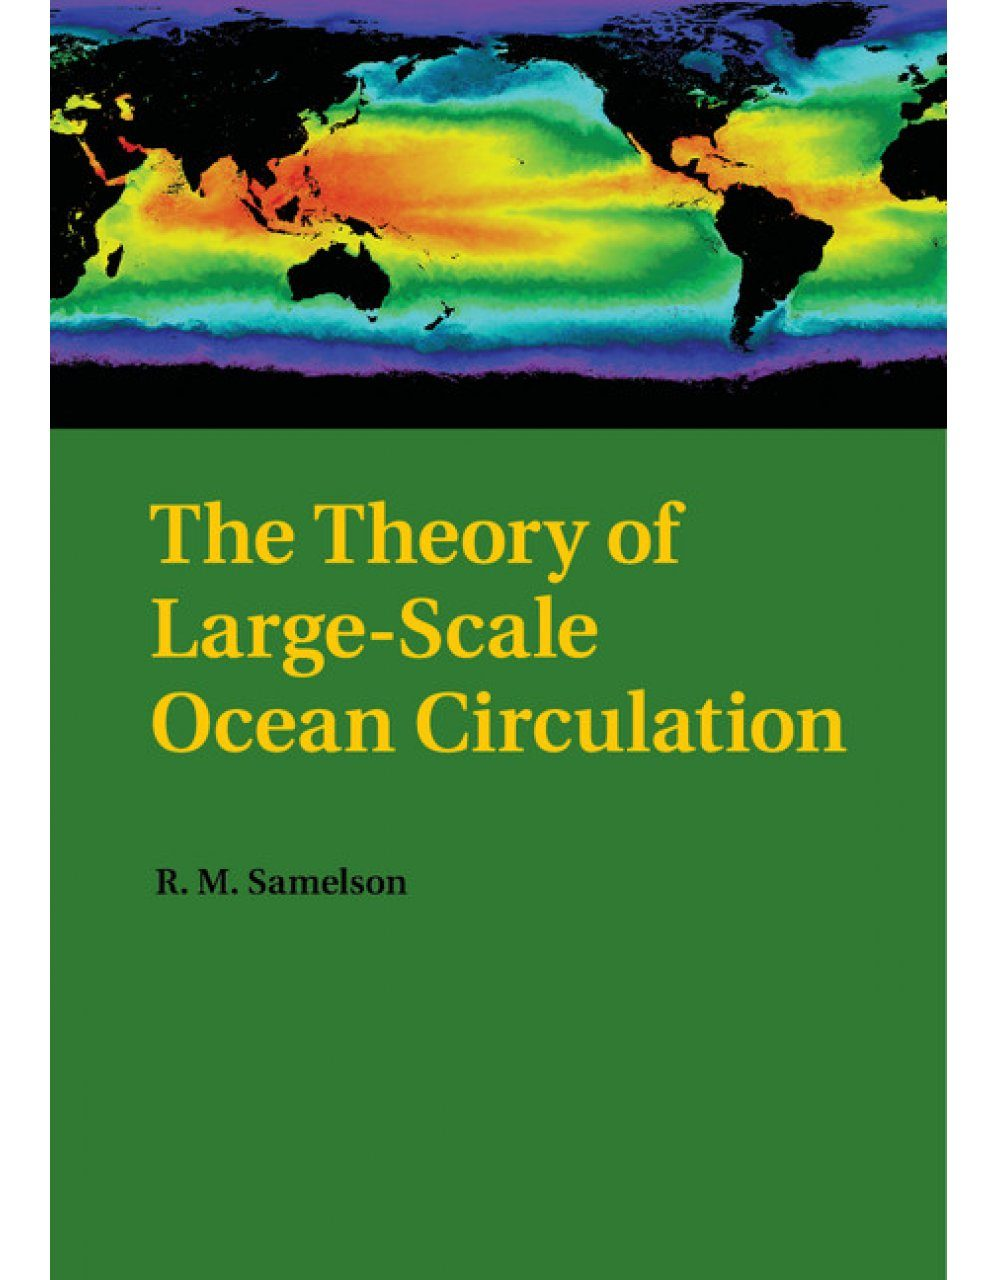 The Theory of Large-Scale Ocean Circulation